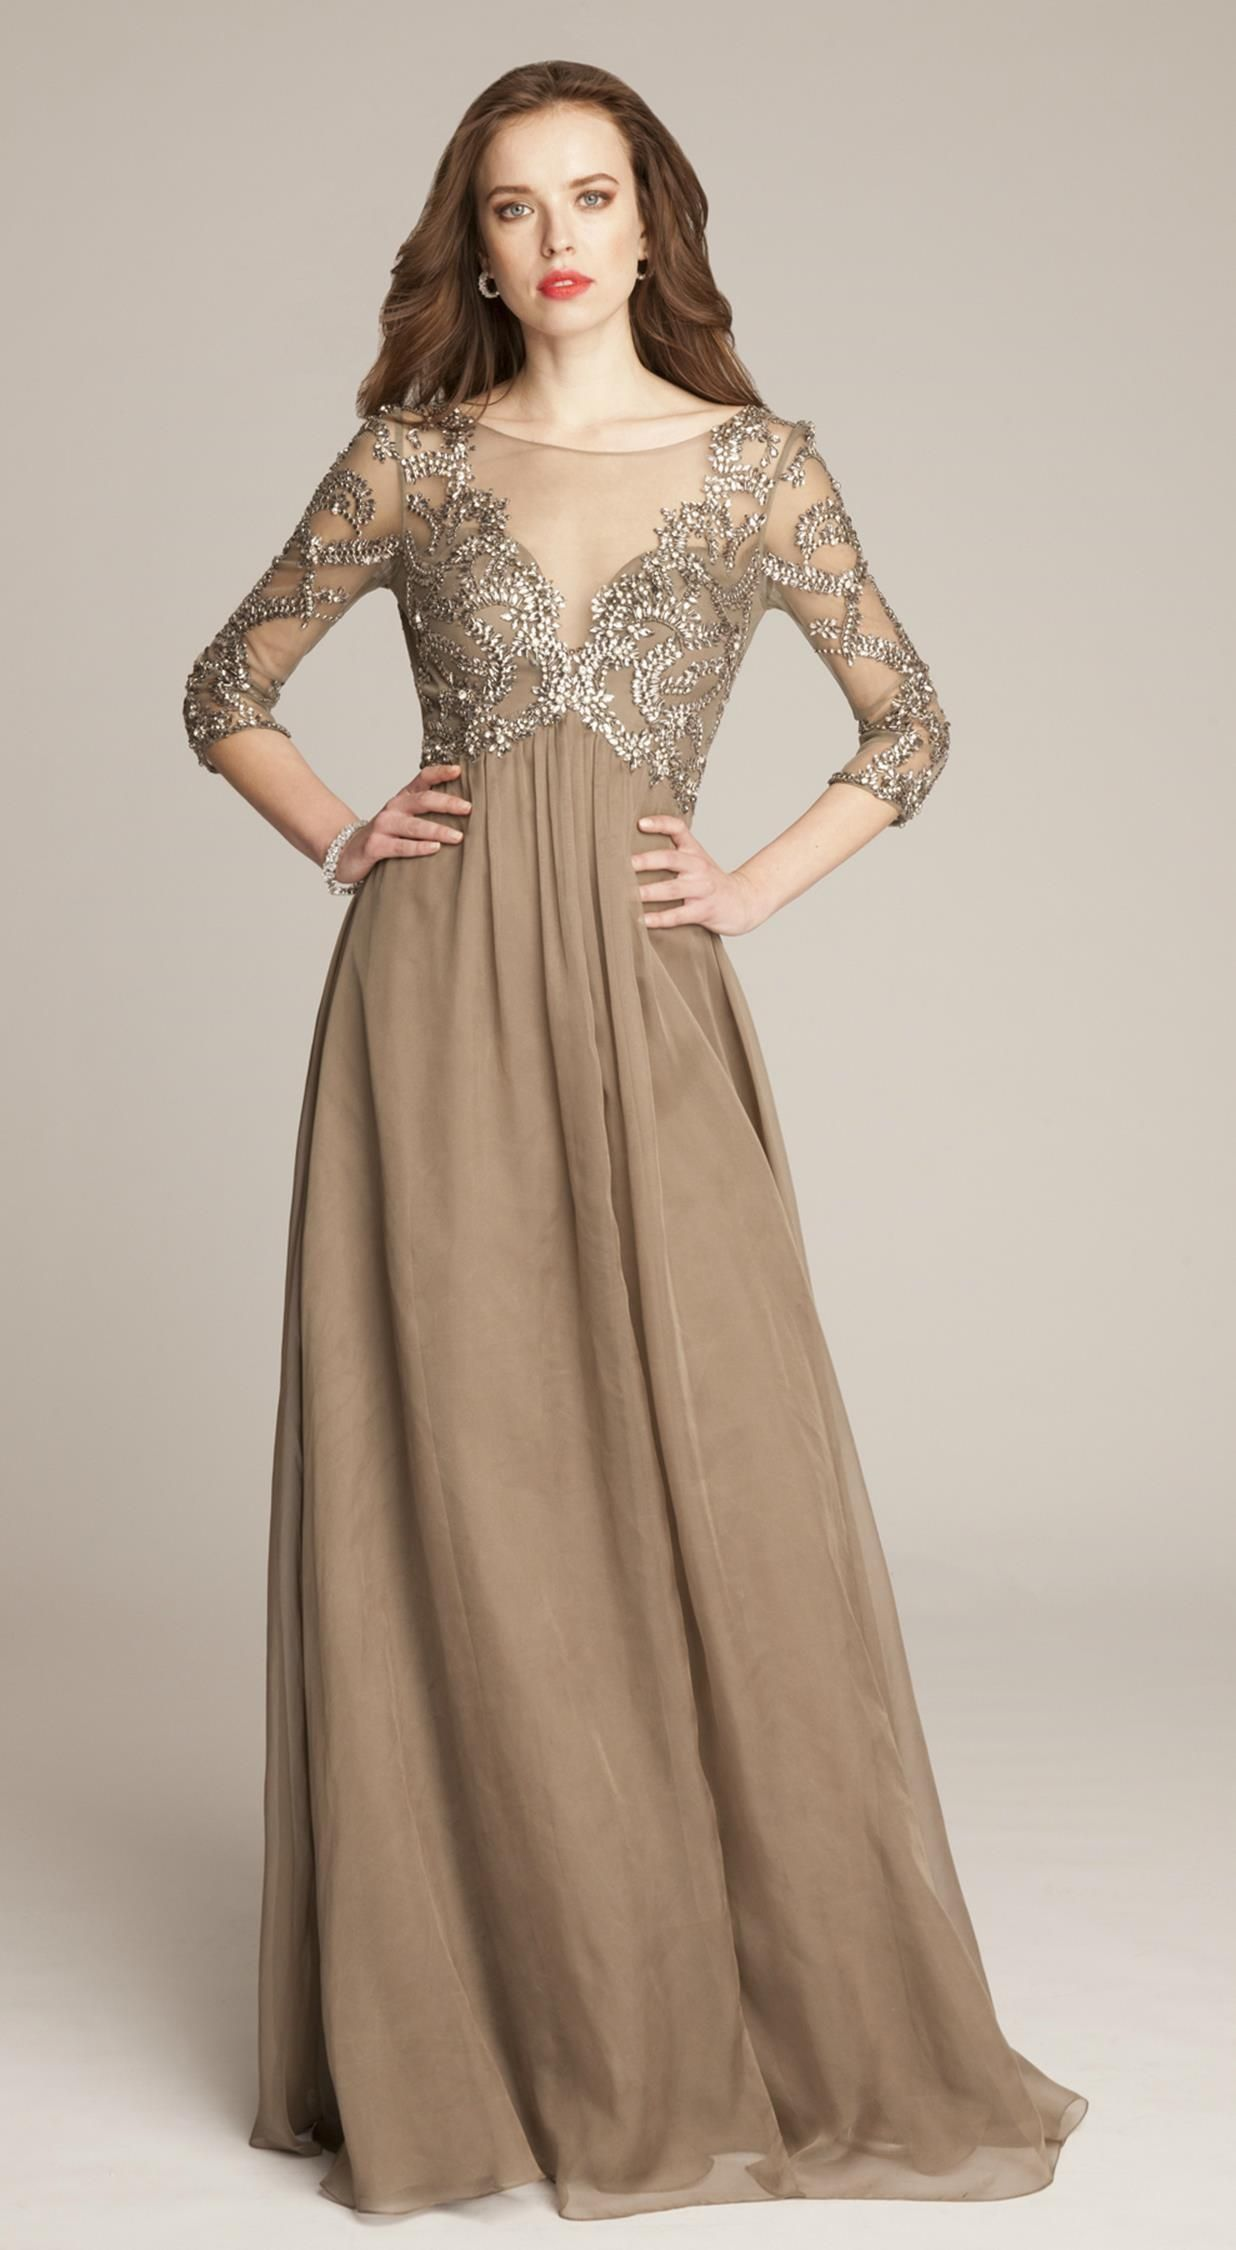 9 Gorgeous Mother Of The Groom Dresses For Fall Weddings